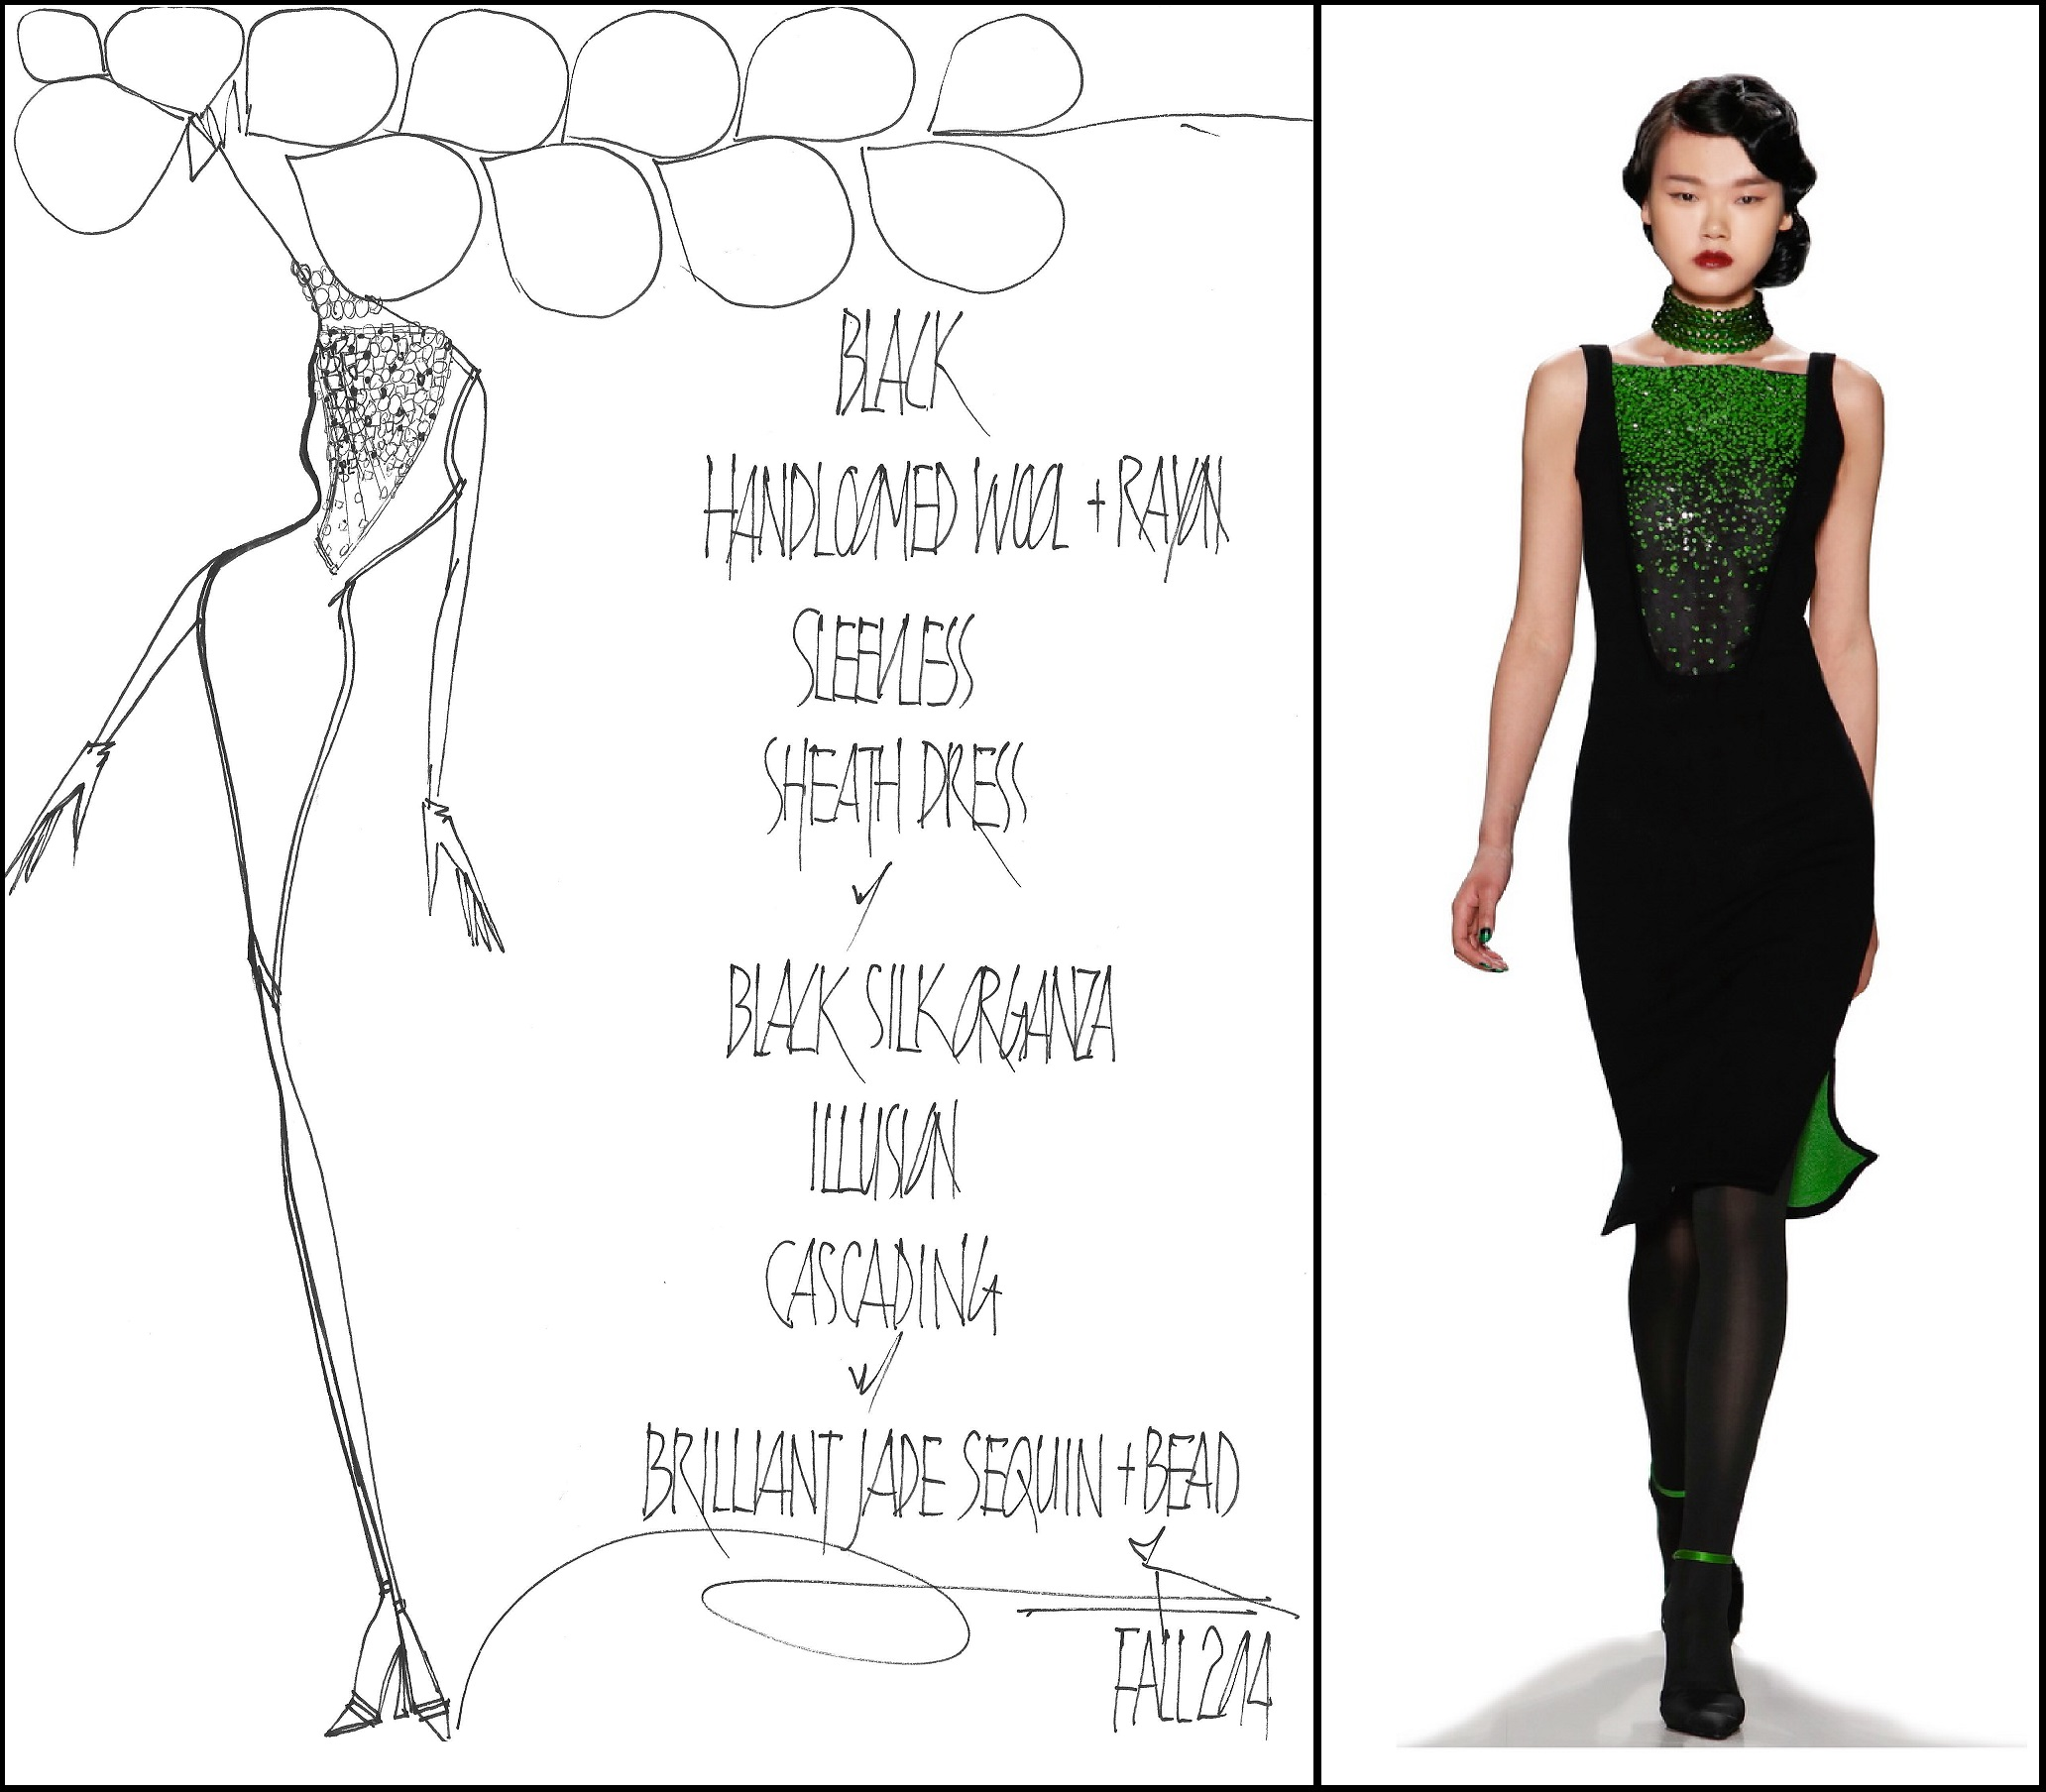 Here's a sample Zang sketch and the stunning dress the resulted from it. Fall 2014 season.